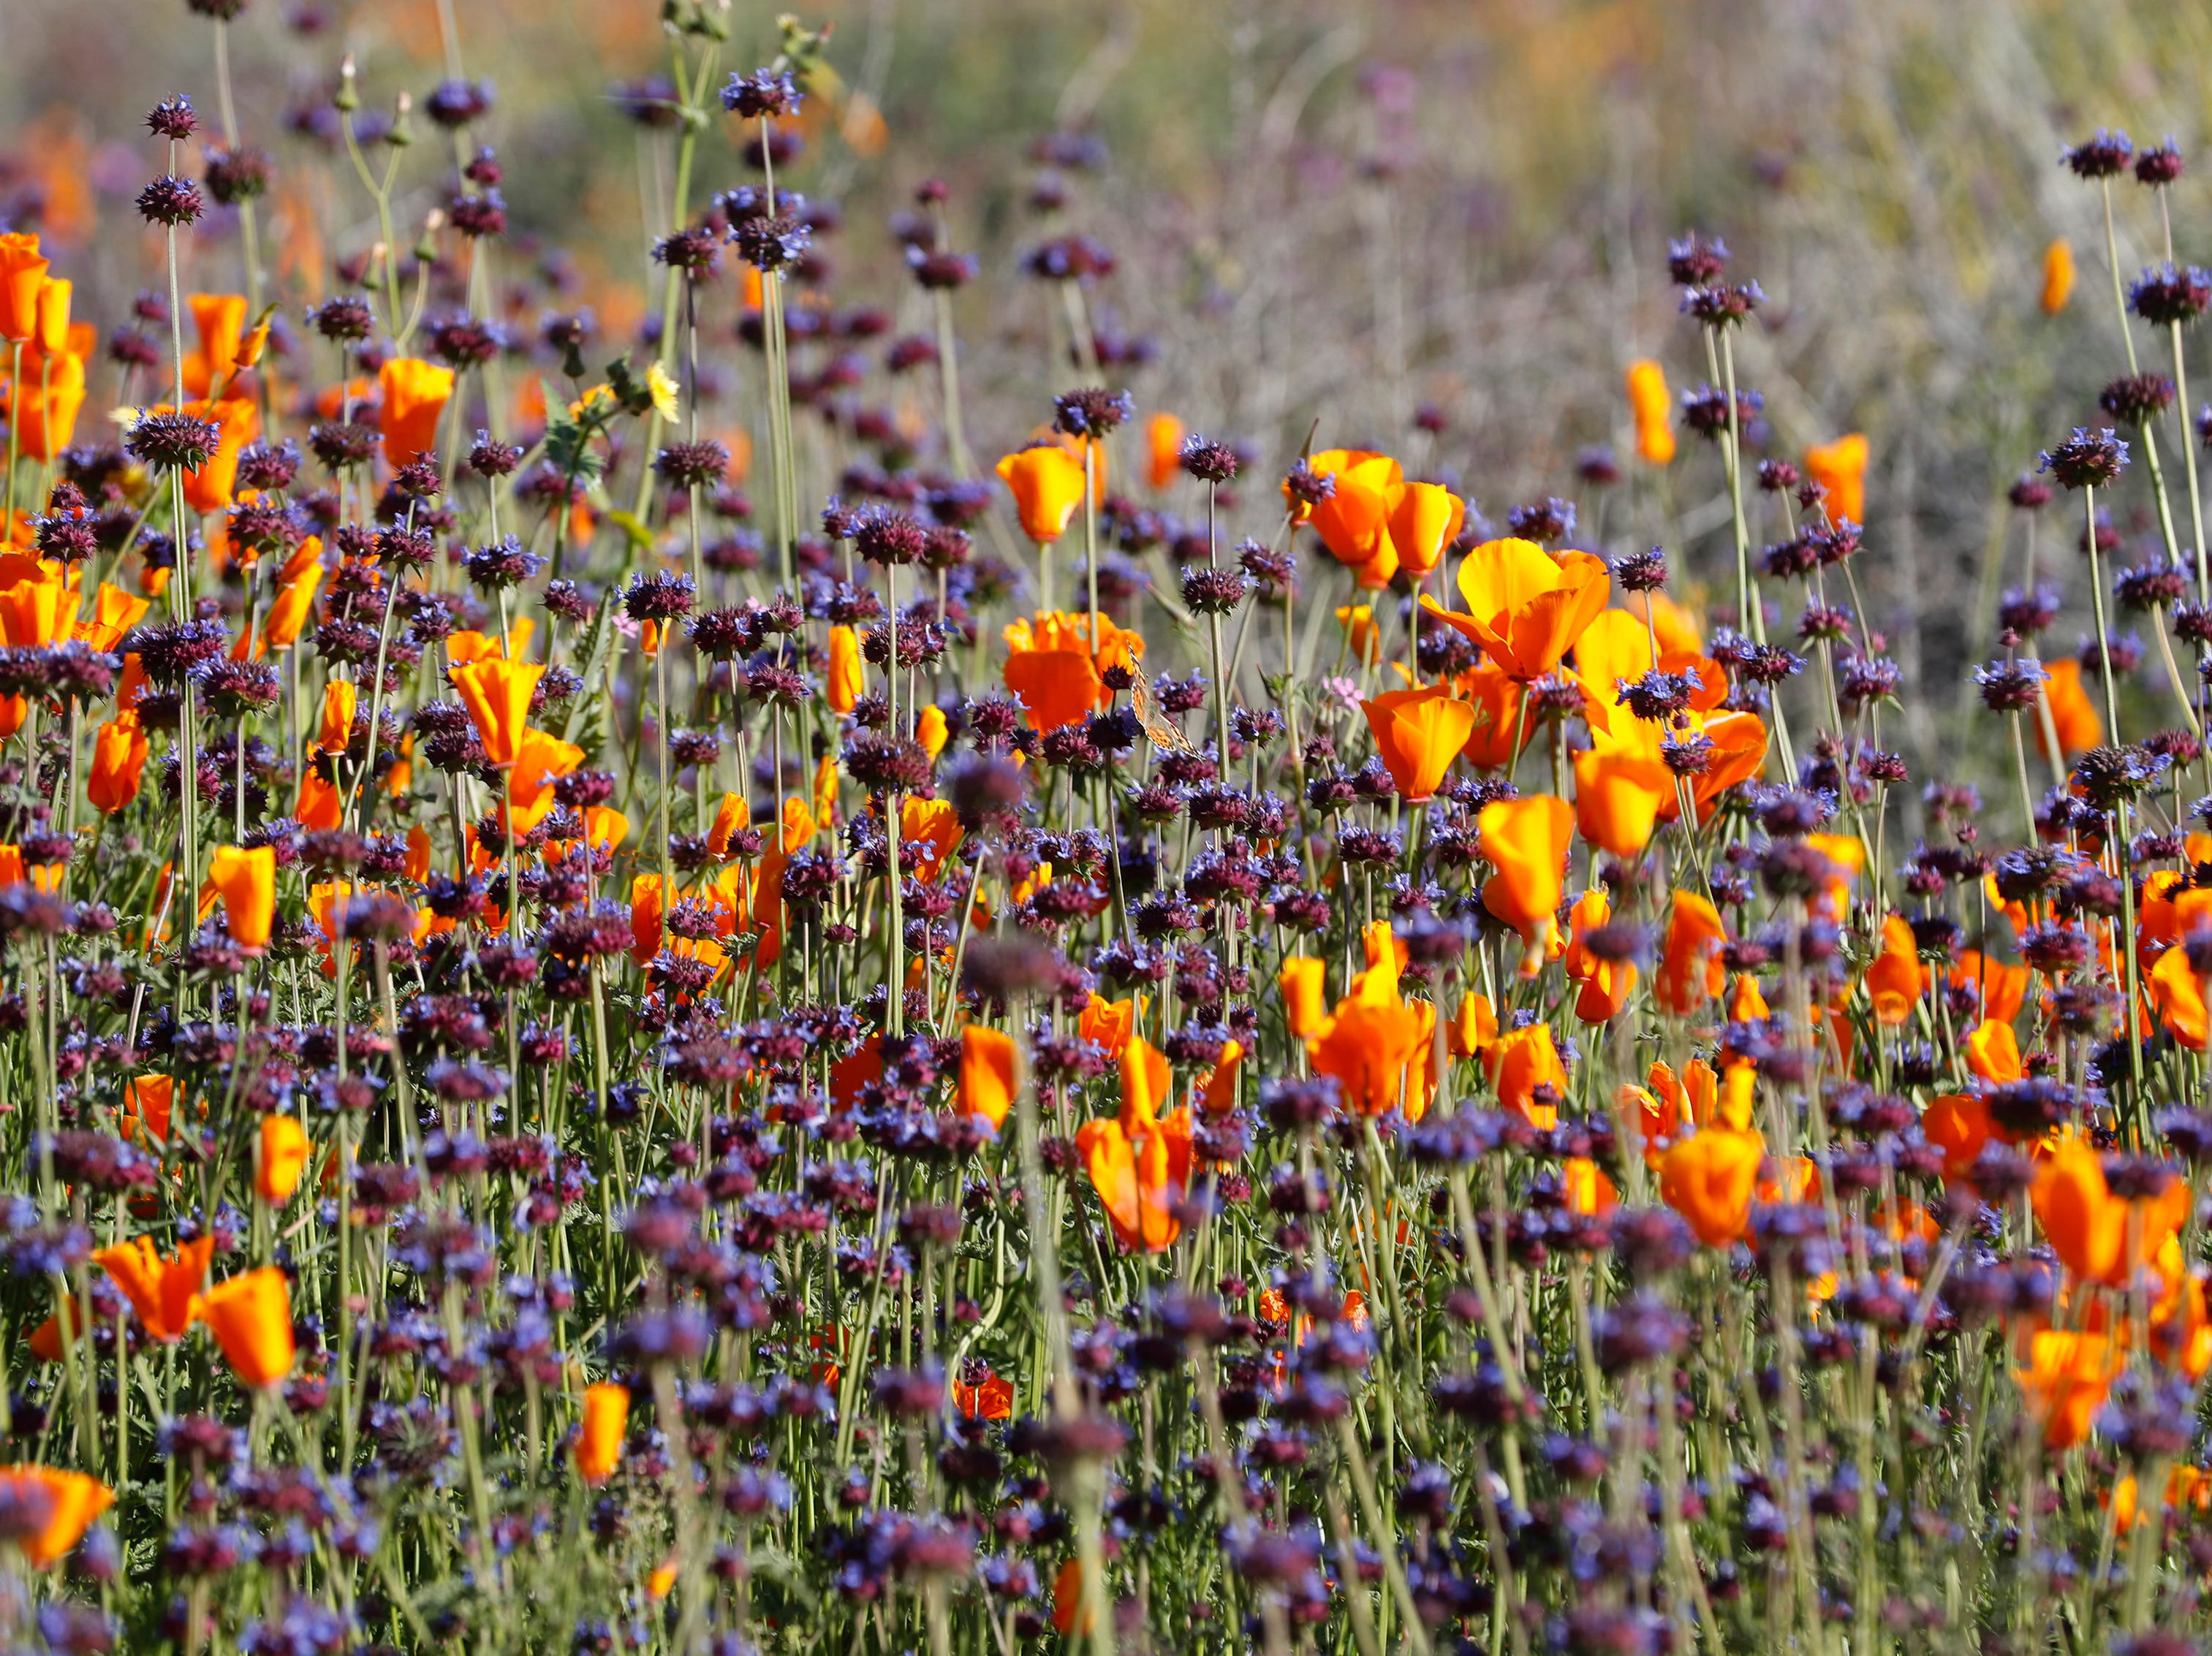 Poppies and wildflowers color Walker Canyon in Lake Elsinore, Calif. Sunday March 17, 2019. After massive crowds flooded the small community to see the flowers, city officials have shut down Walker Canyon to the public. No shuttles or visitors will be allowed.